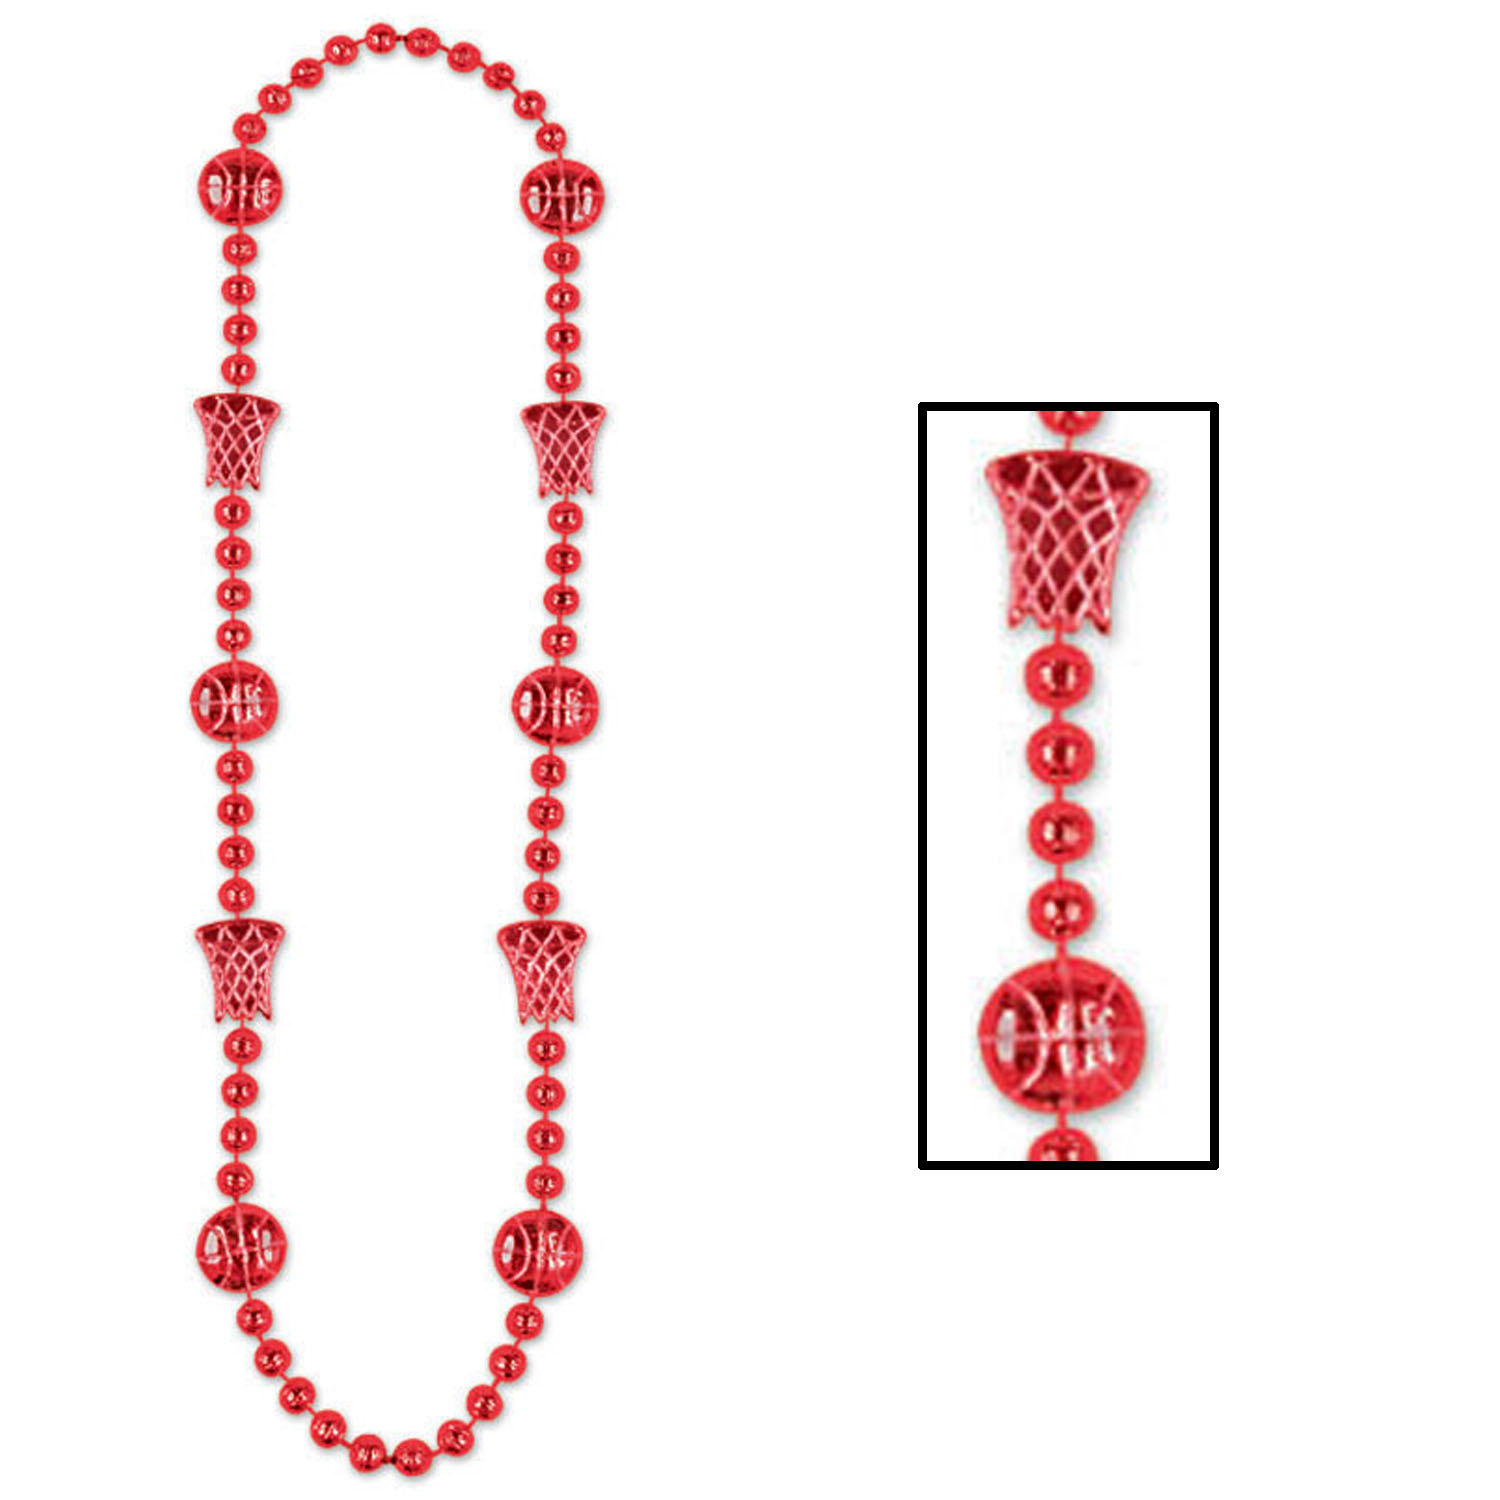 Red Basketball Beads (Pack of 12) .